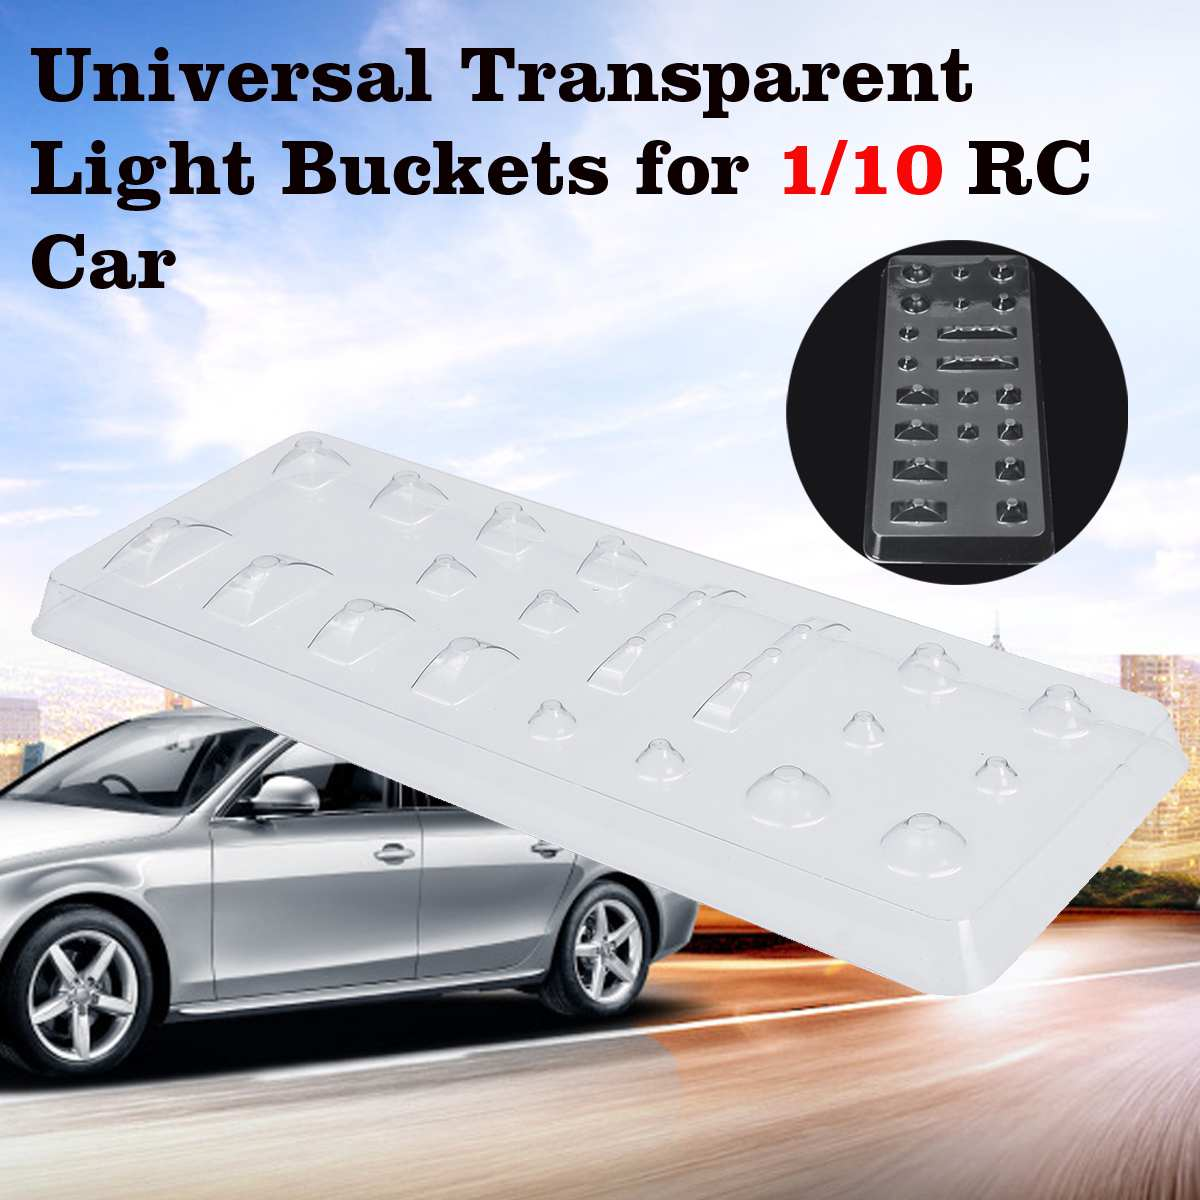 <font><b>RC</b></font> <font><b>Body</b></font> Universal Transparent Light Buckets for <font><b>1</b></font>/<font><b>10</b></font> On Road HPI <font><b>Tamiya</b></font> Drift <font><b>RC</b></font> Car Parts image